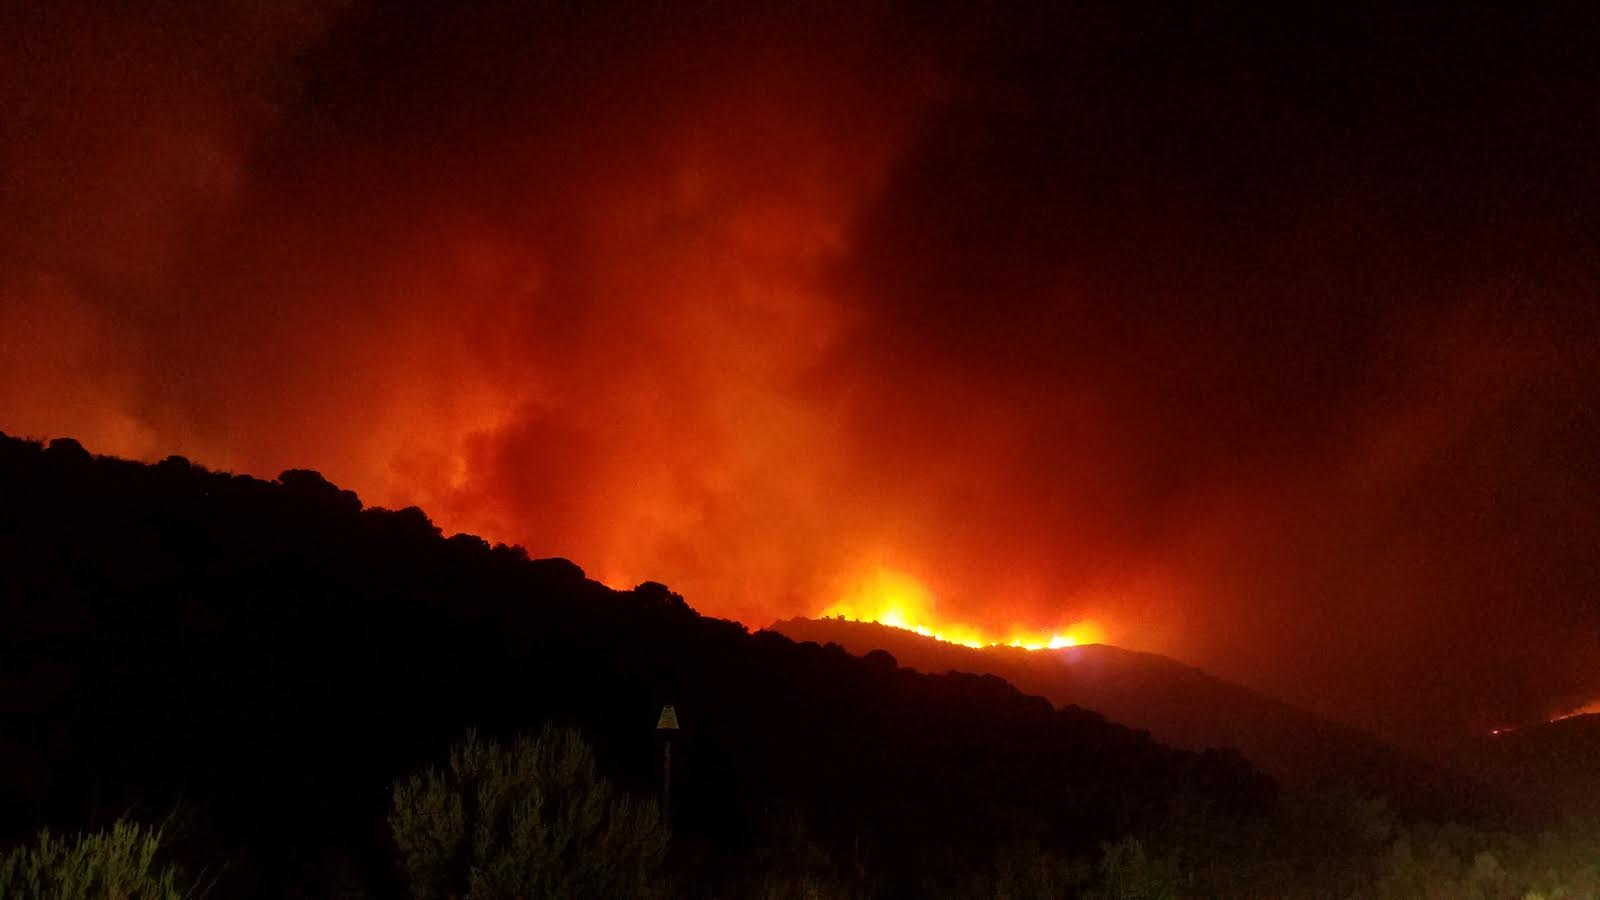 Laney Rim Fire Estimated at 13,198 Acres, 72% Contained [PHOTOS]